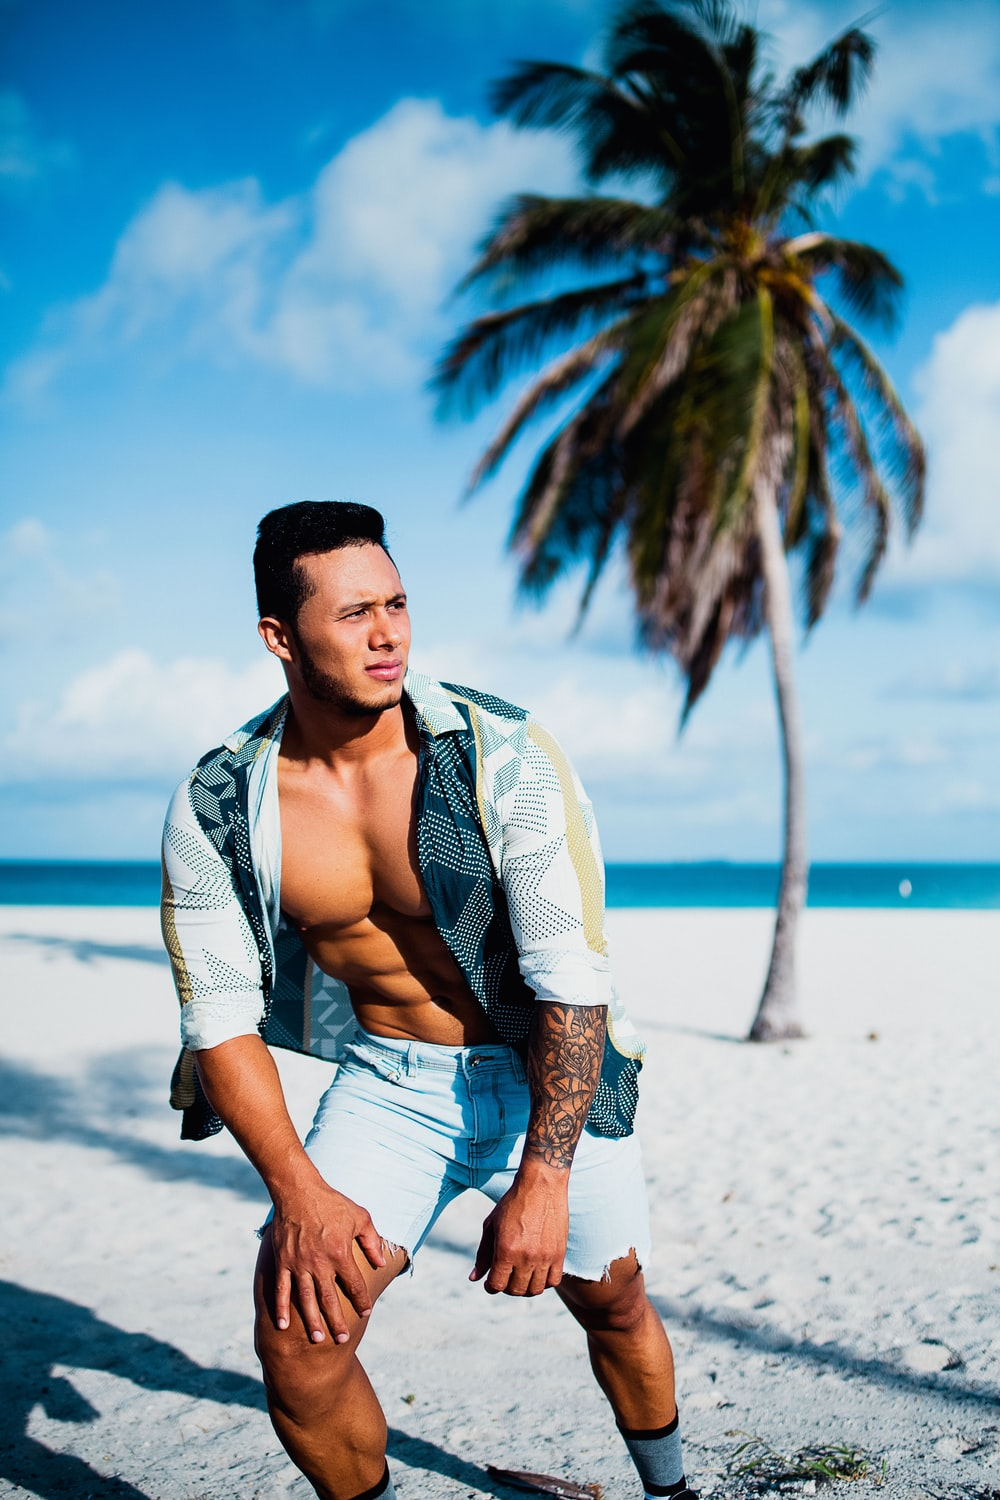 man in white button up shirt and blue denim shorts standing on beach during daytime